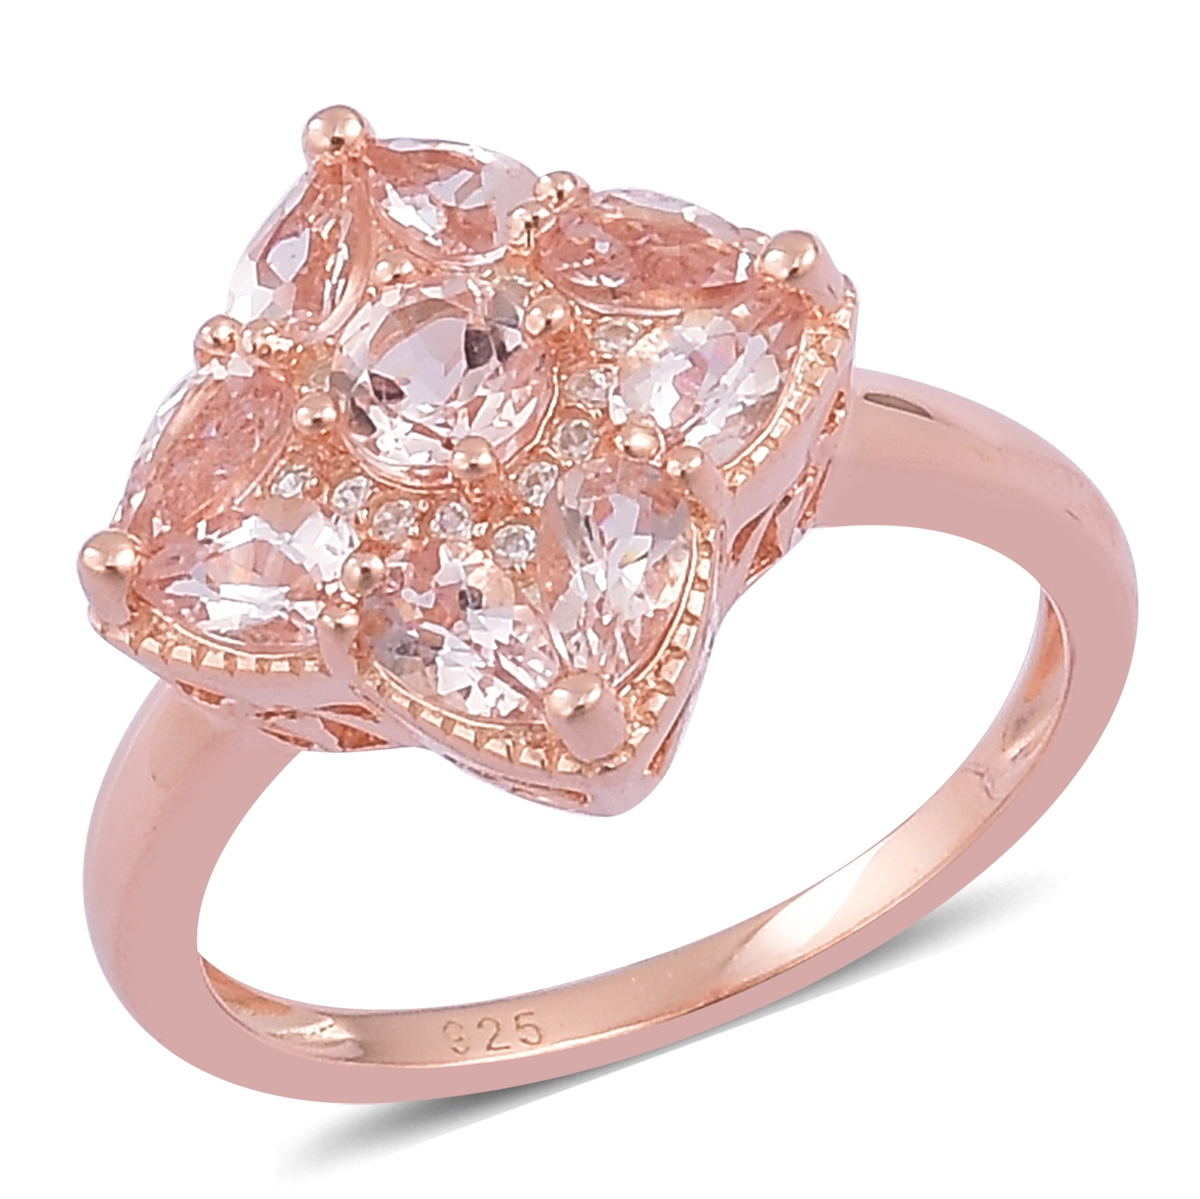 Morganite, White Zircon 14K Rose Gold Plated Silver Ring 1.6 cttw ...